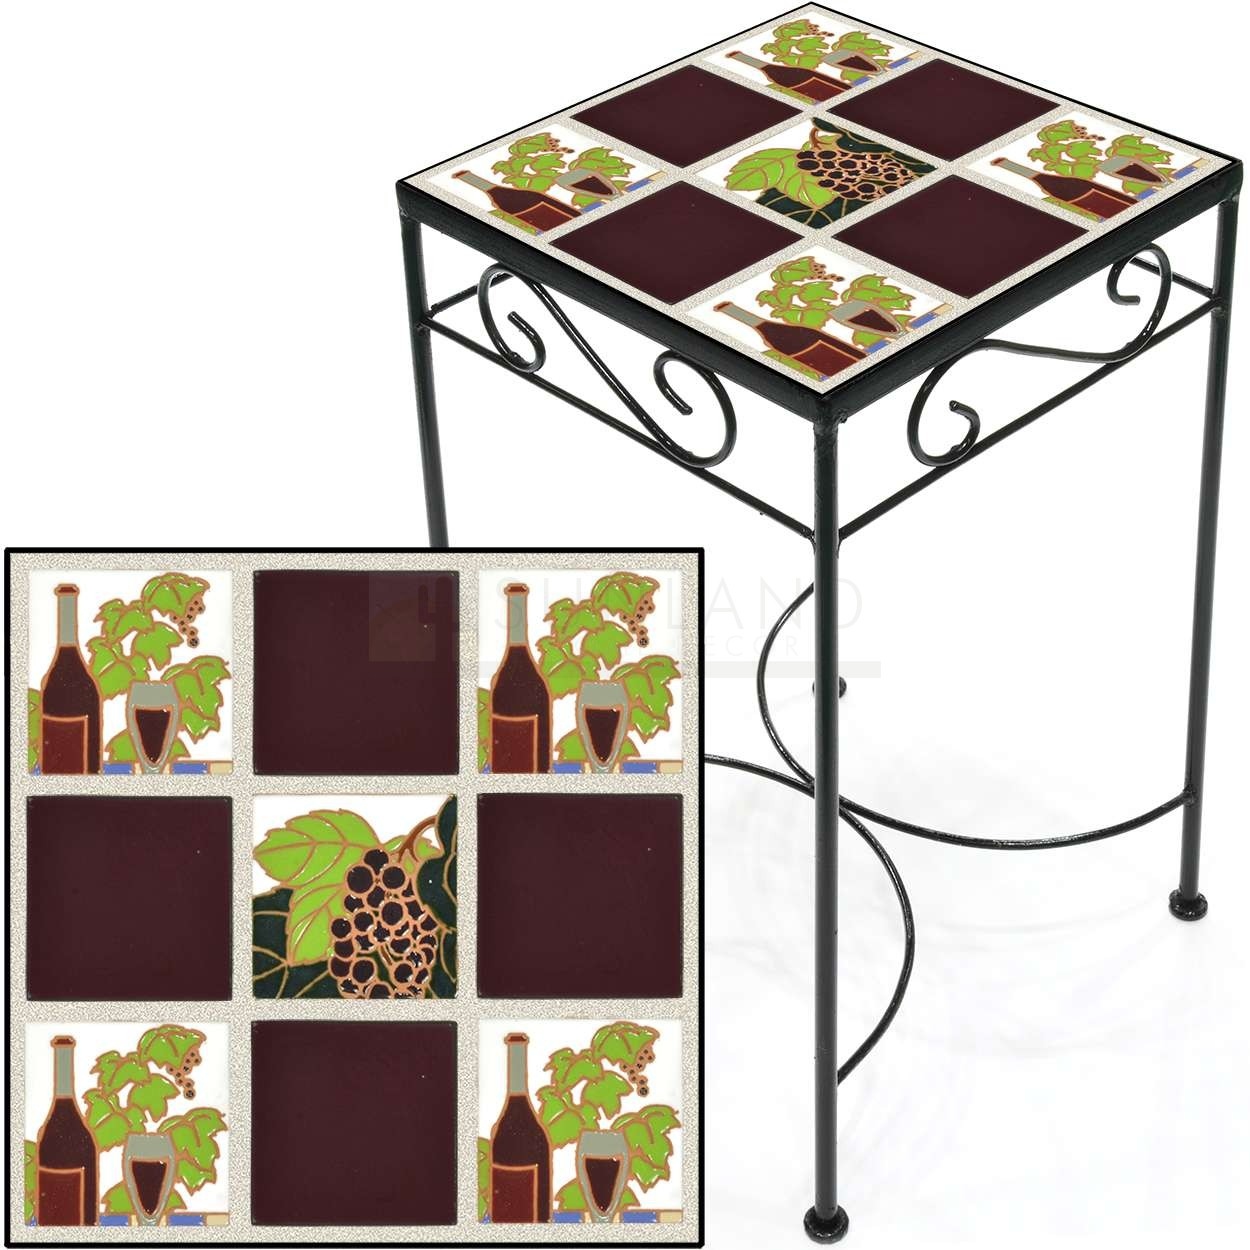 tile accent table wine and grapes burgundy painted metal more views red tablecloth bronze bedside barn door window shutters buffet ikea solid cherry dining modern wood coffee